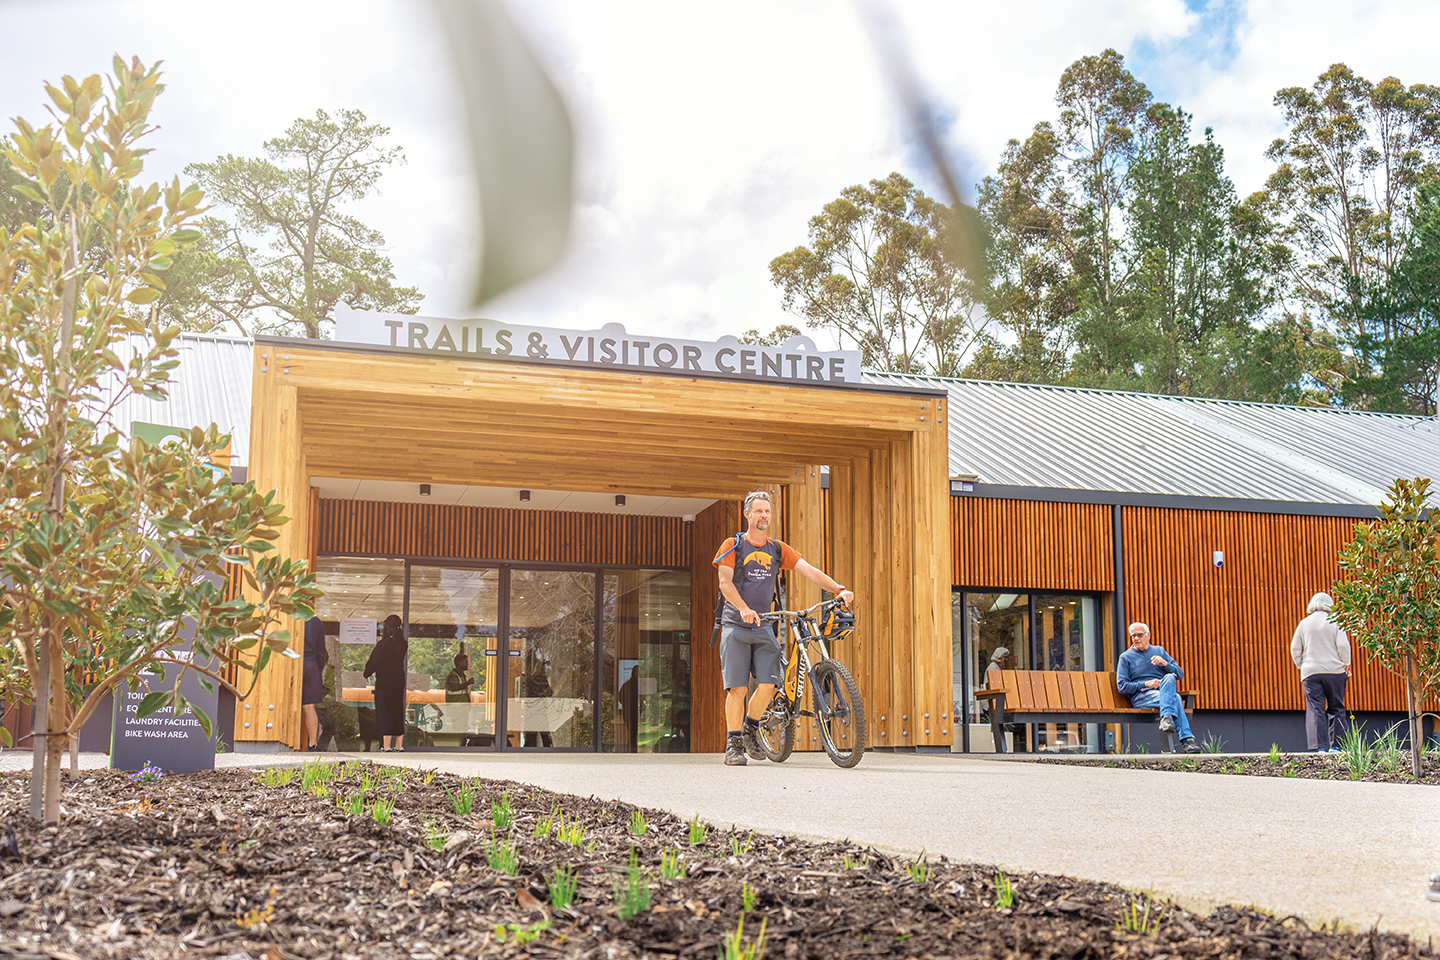 Dwellingup Trails & Visitor Centre opening